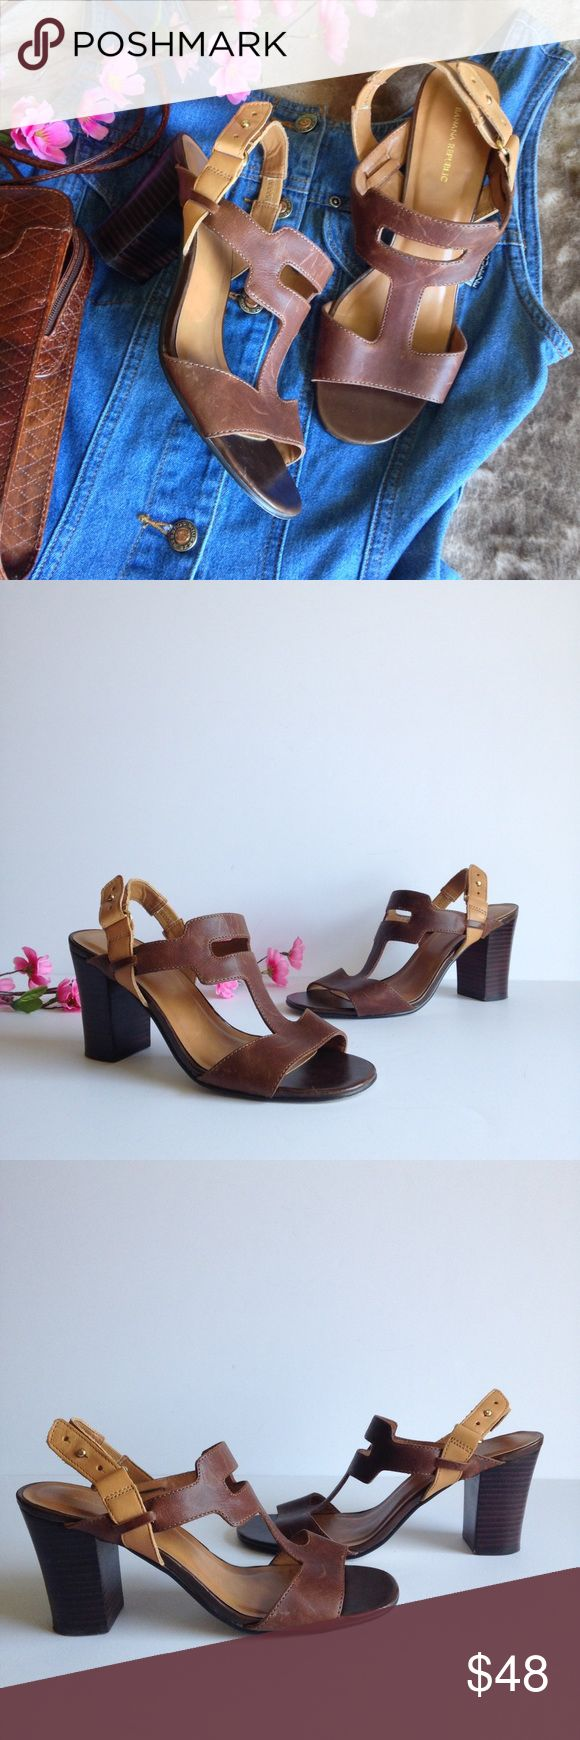 """Banana Republic Two Tone Heeled Leather Sandals Stunning two tone leather sandals from Banana Republic, in brown and tan, features adjustable t strap, fun cutout design and 3.5"""" heels. In great used condition, some wear as pictured, size 7.5. I happily entertain reasonable offers 😊🌸 Banana Republic Shoes Sandals"""